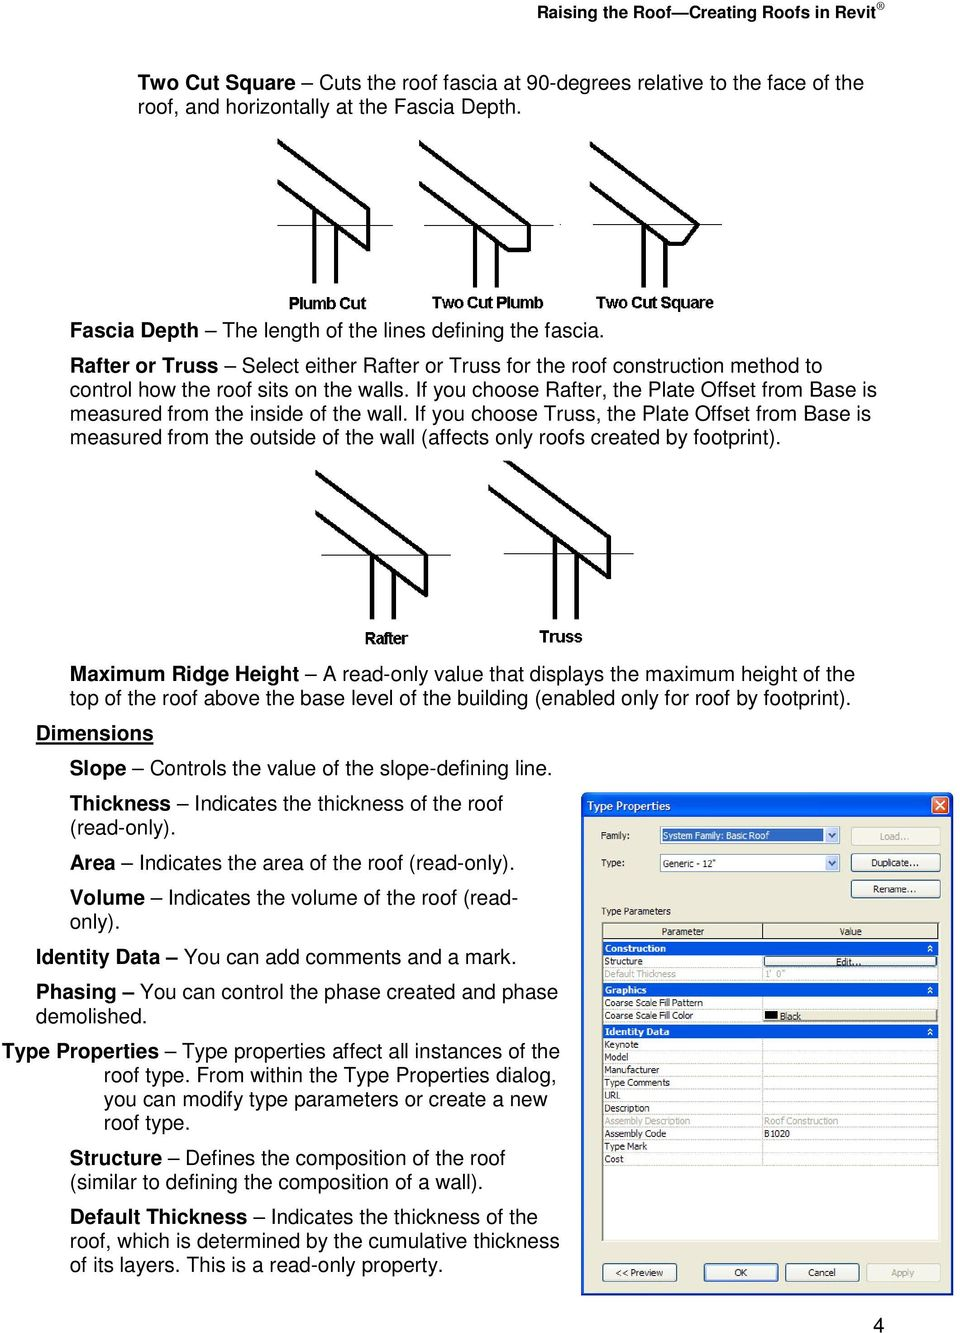 Raising the Roof Creating Roofs in Revit David Cohn - PDF